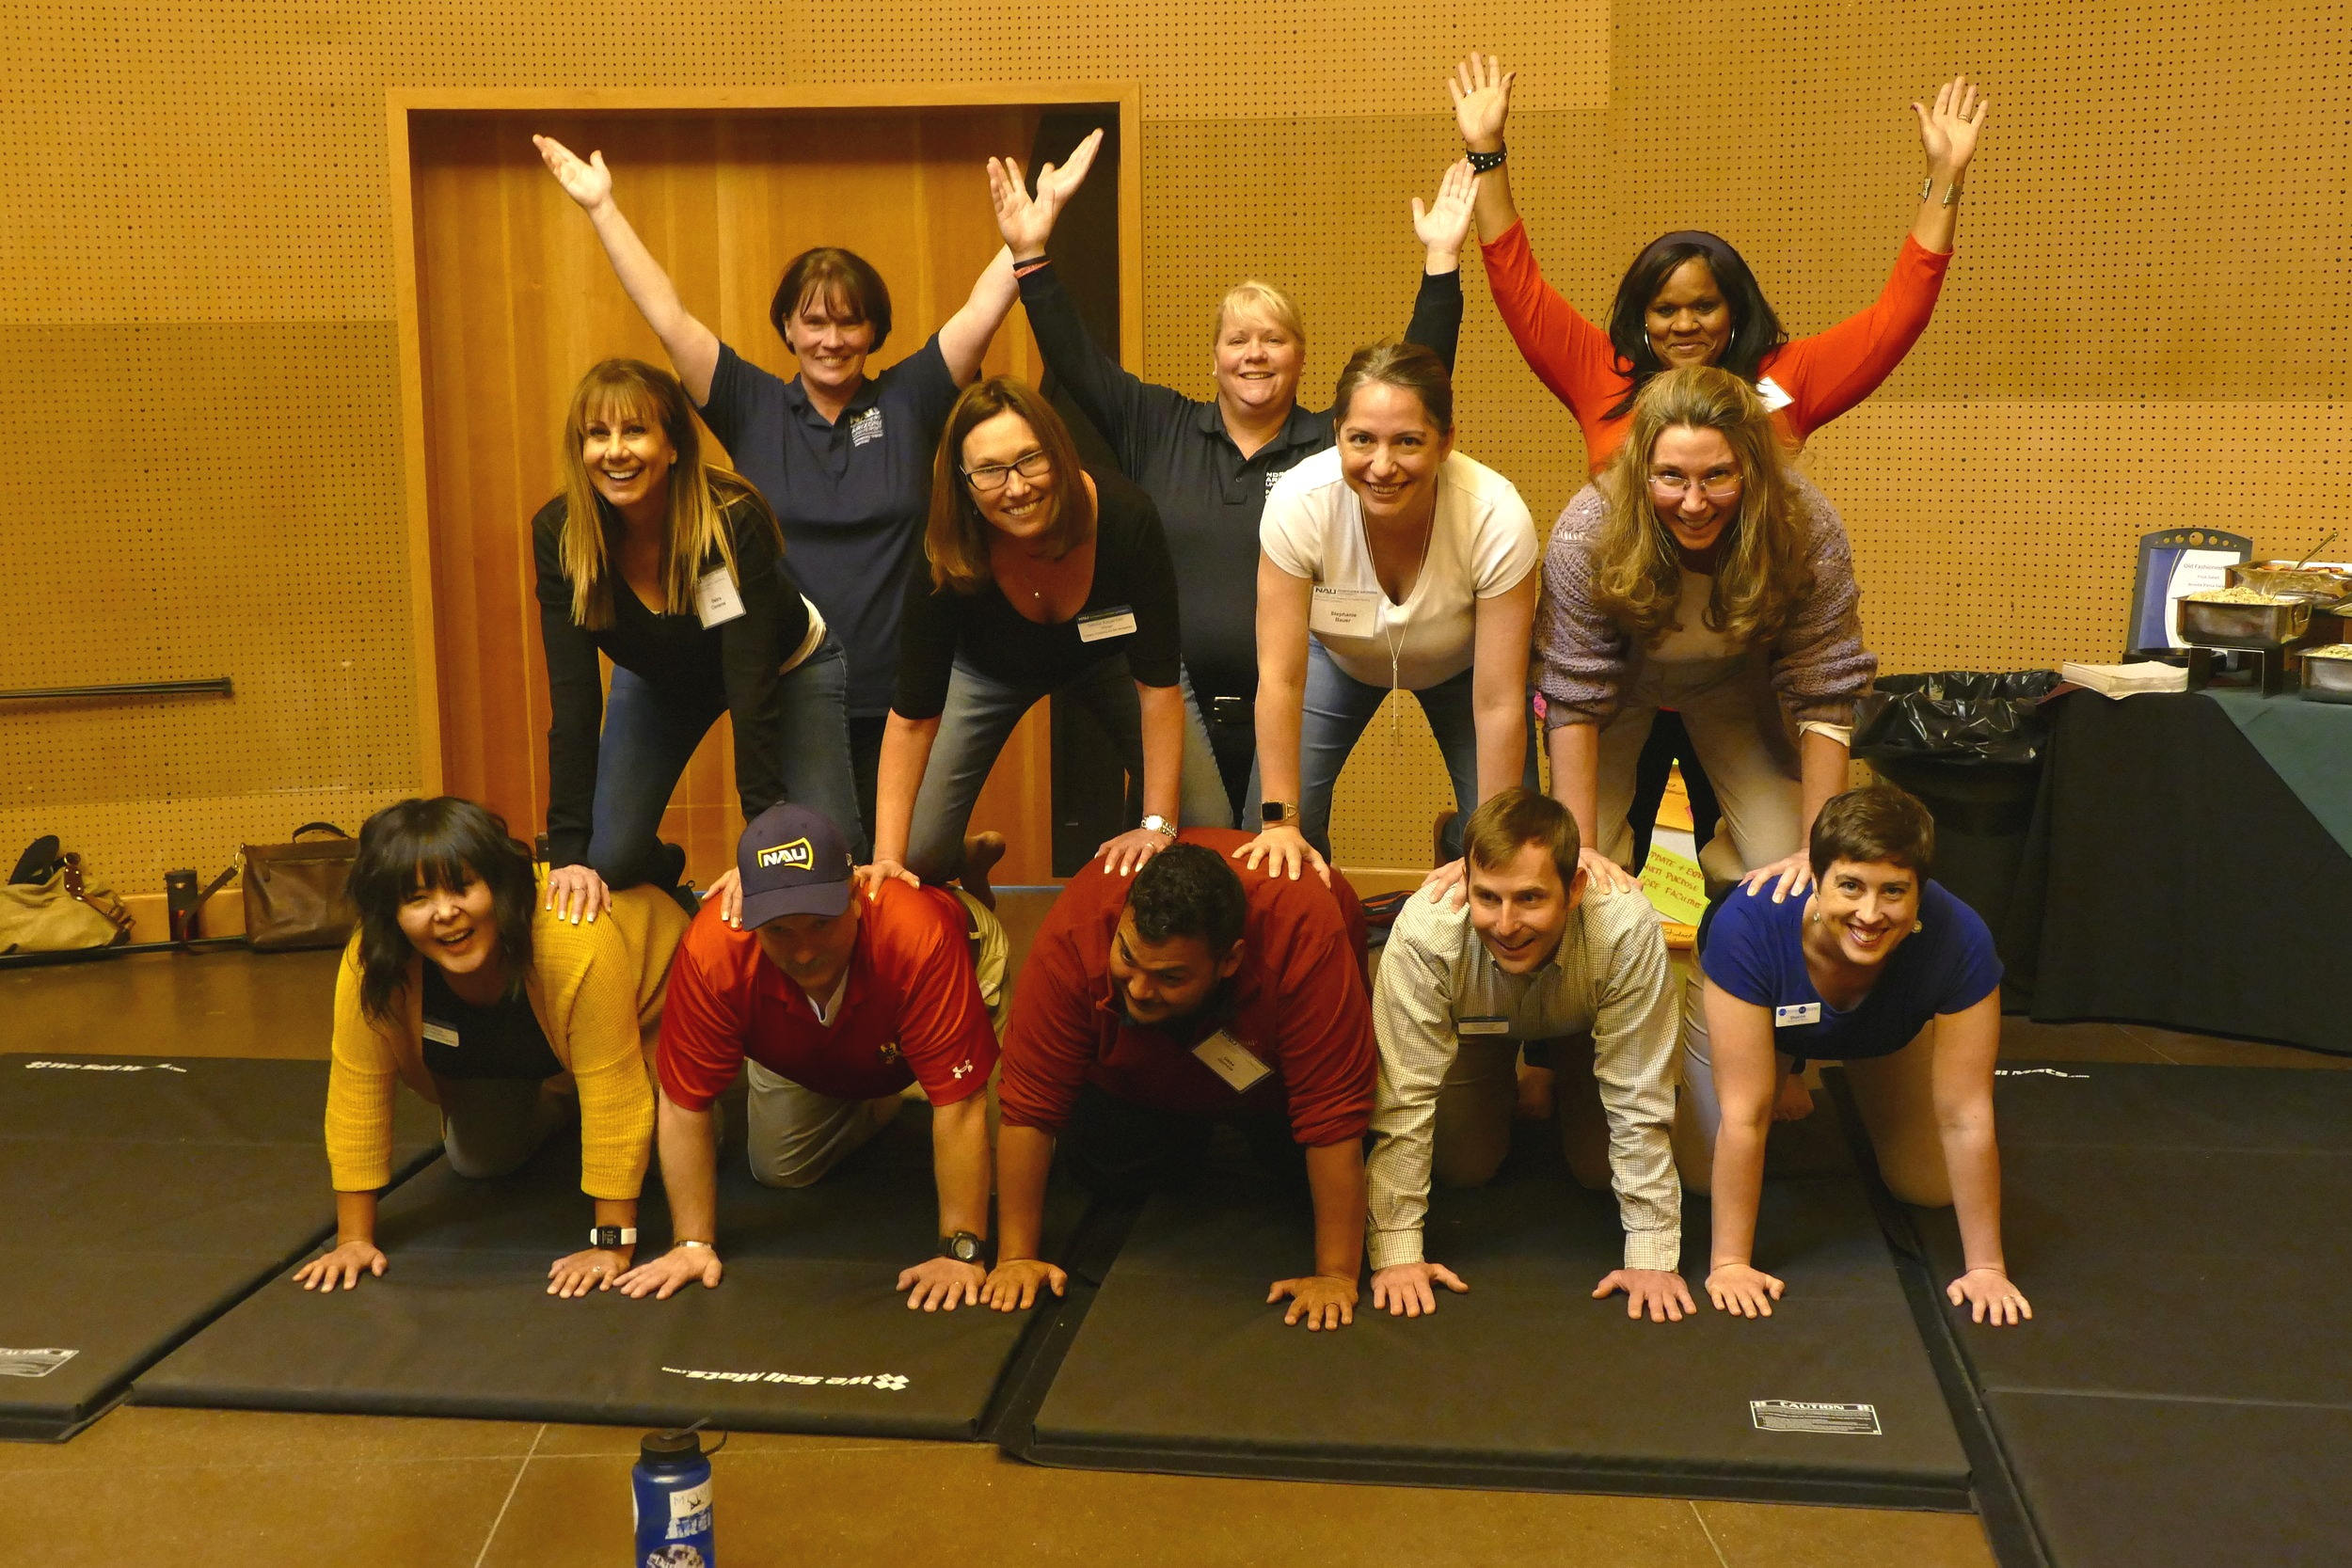 CAPCOT members build a pyramid. For many of any of these professionals, this was their first time ever doing acro balance. They did great!